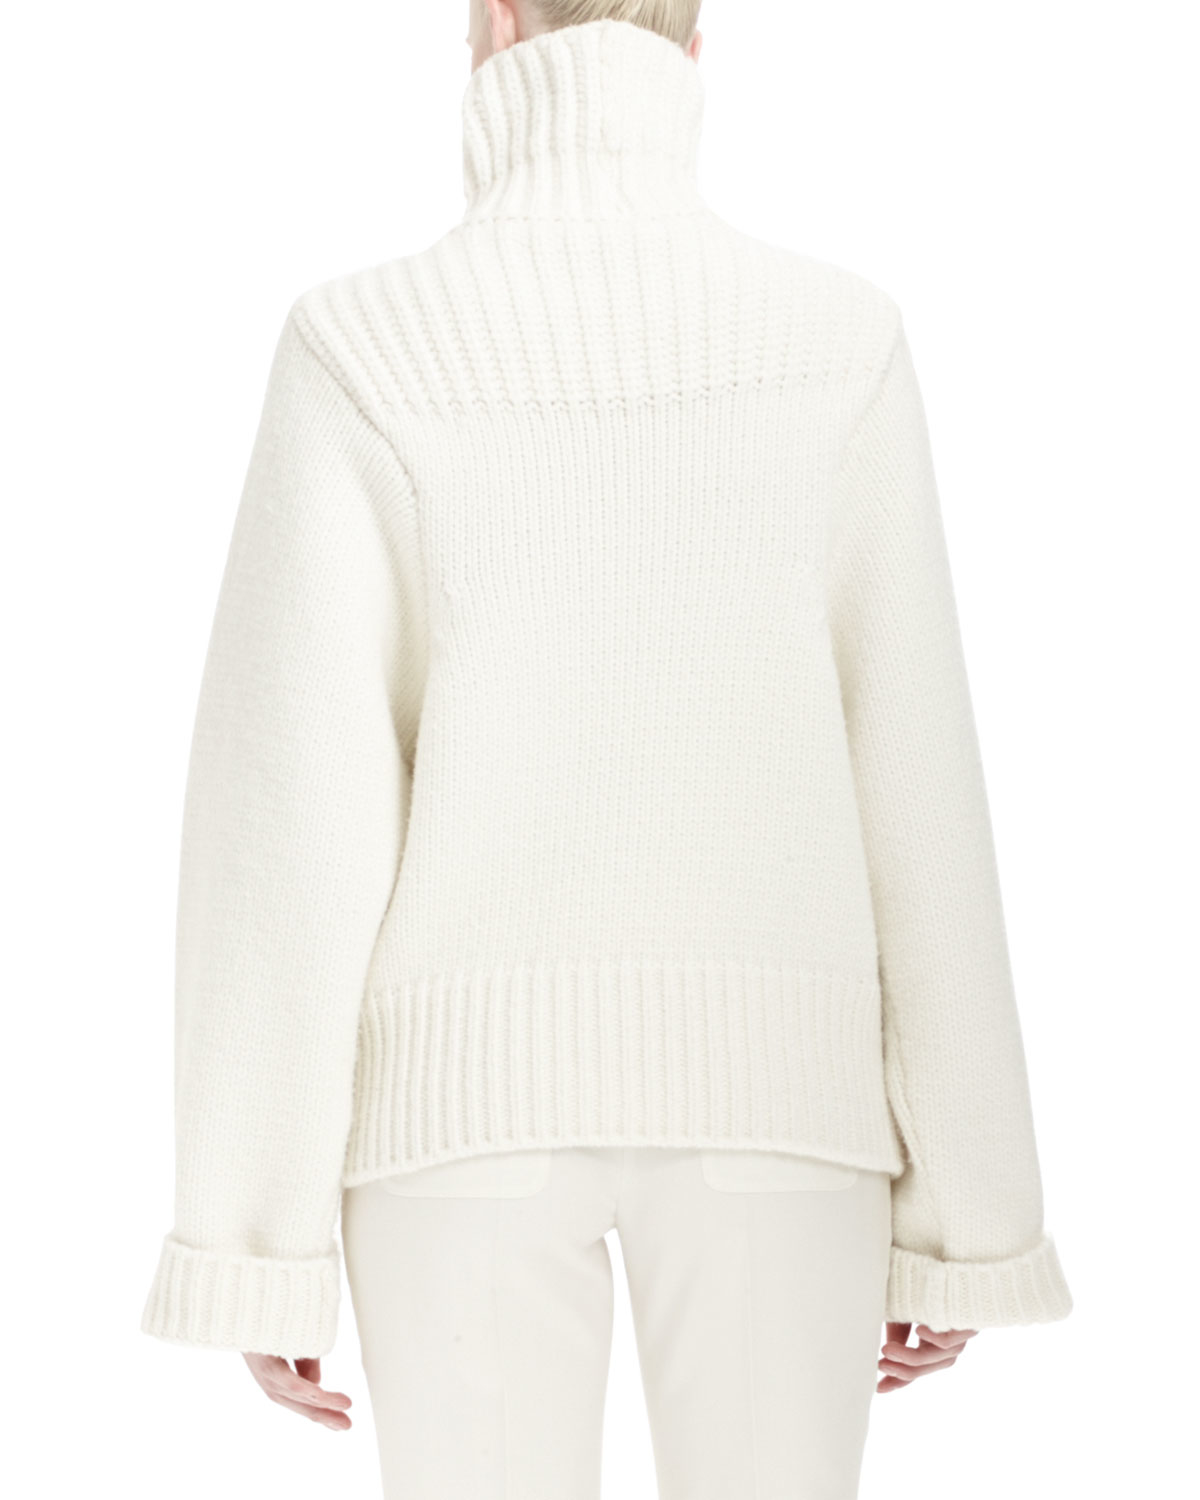 Stella mccartney Long-sleeve Turtleneck Sweater in White | Lyst